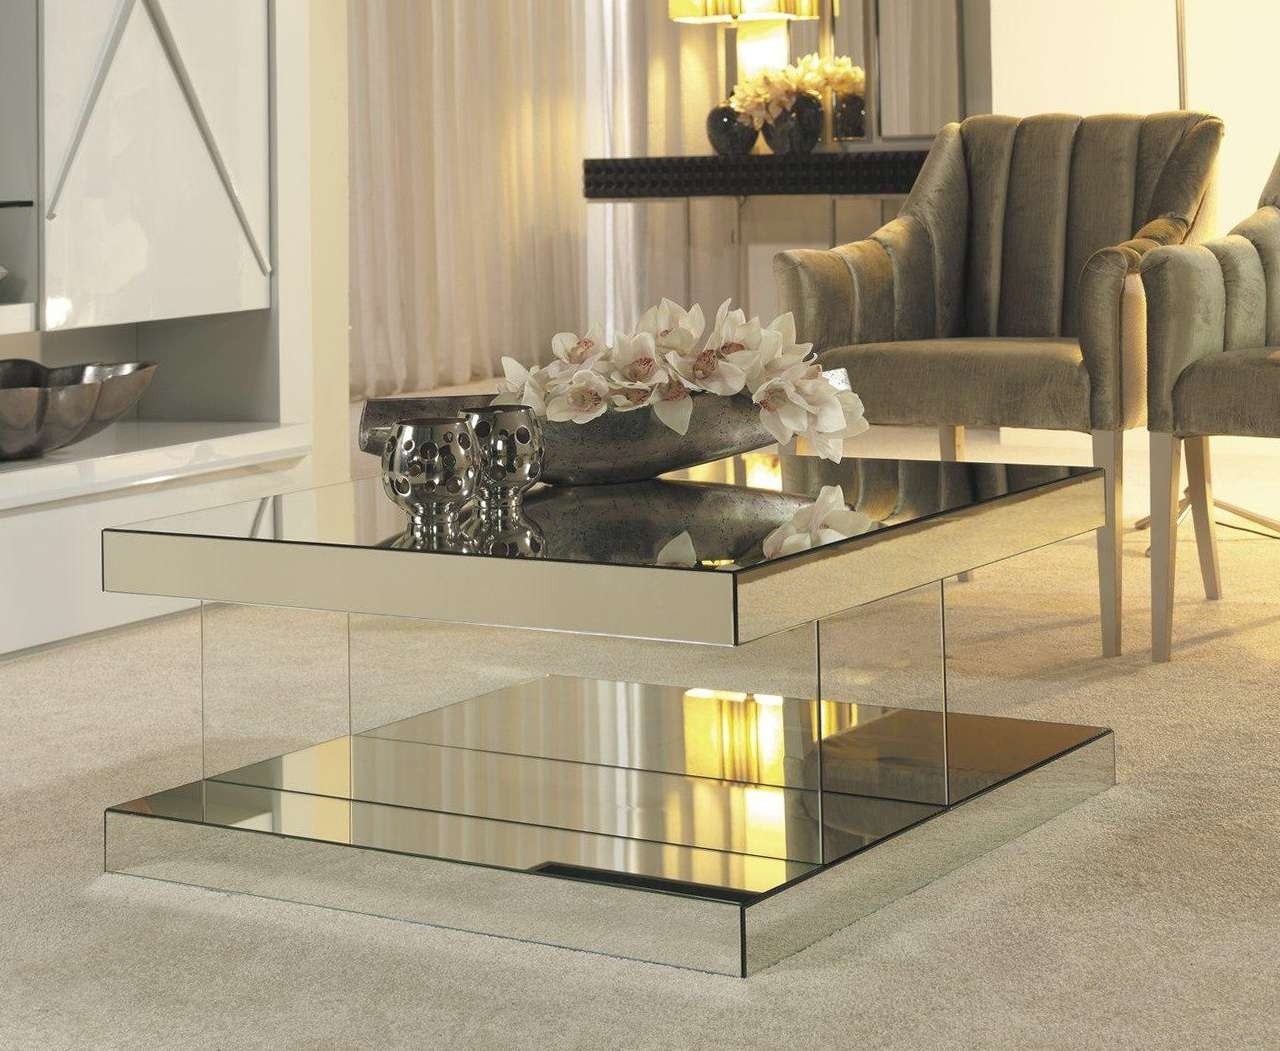 Luxury Mirrored Coffee Table — Cabinets, Beds, Sofas And Throughout Most Current Mirror Glass Coffee Table (View 9 of 20)